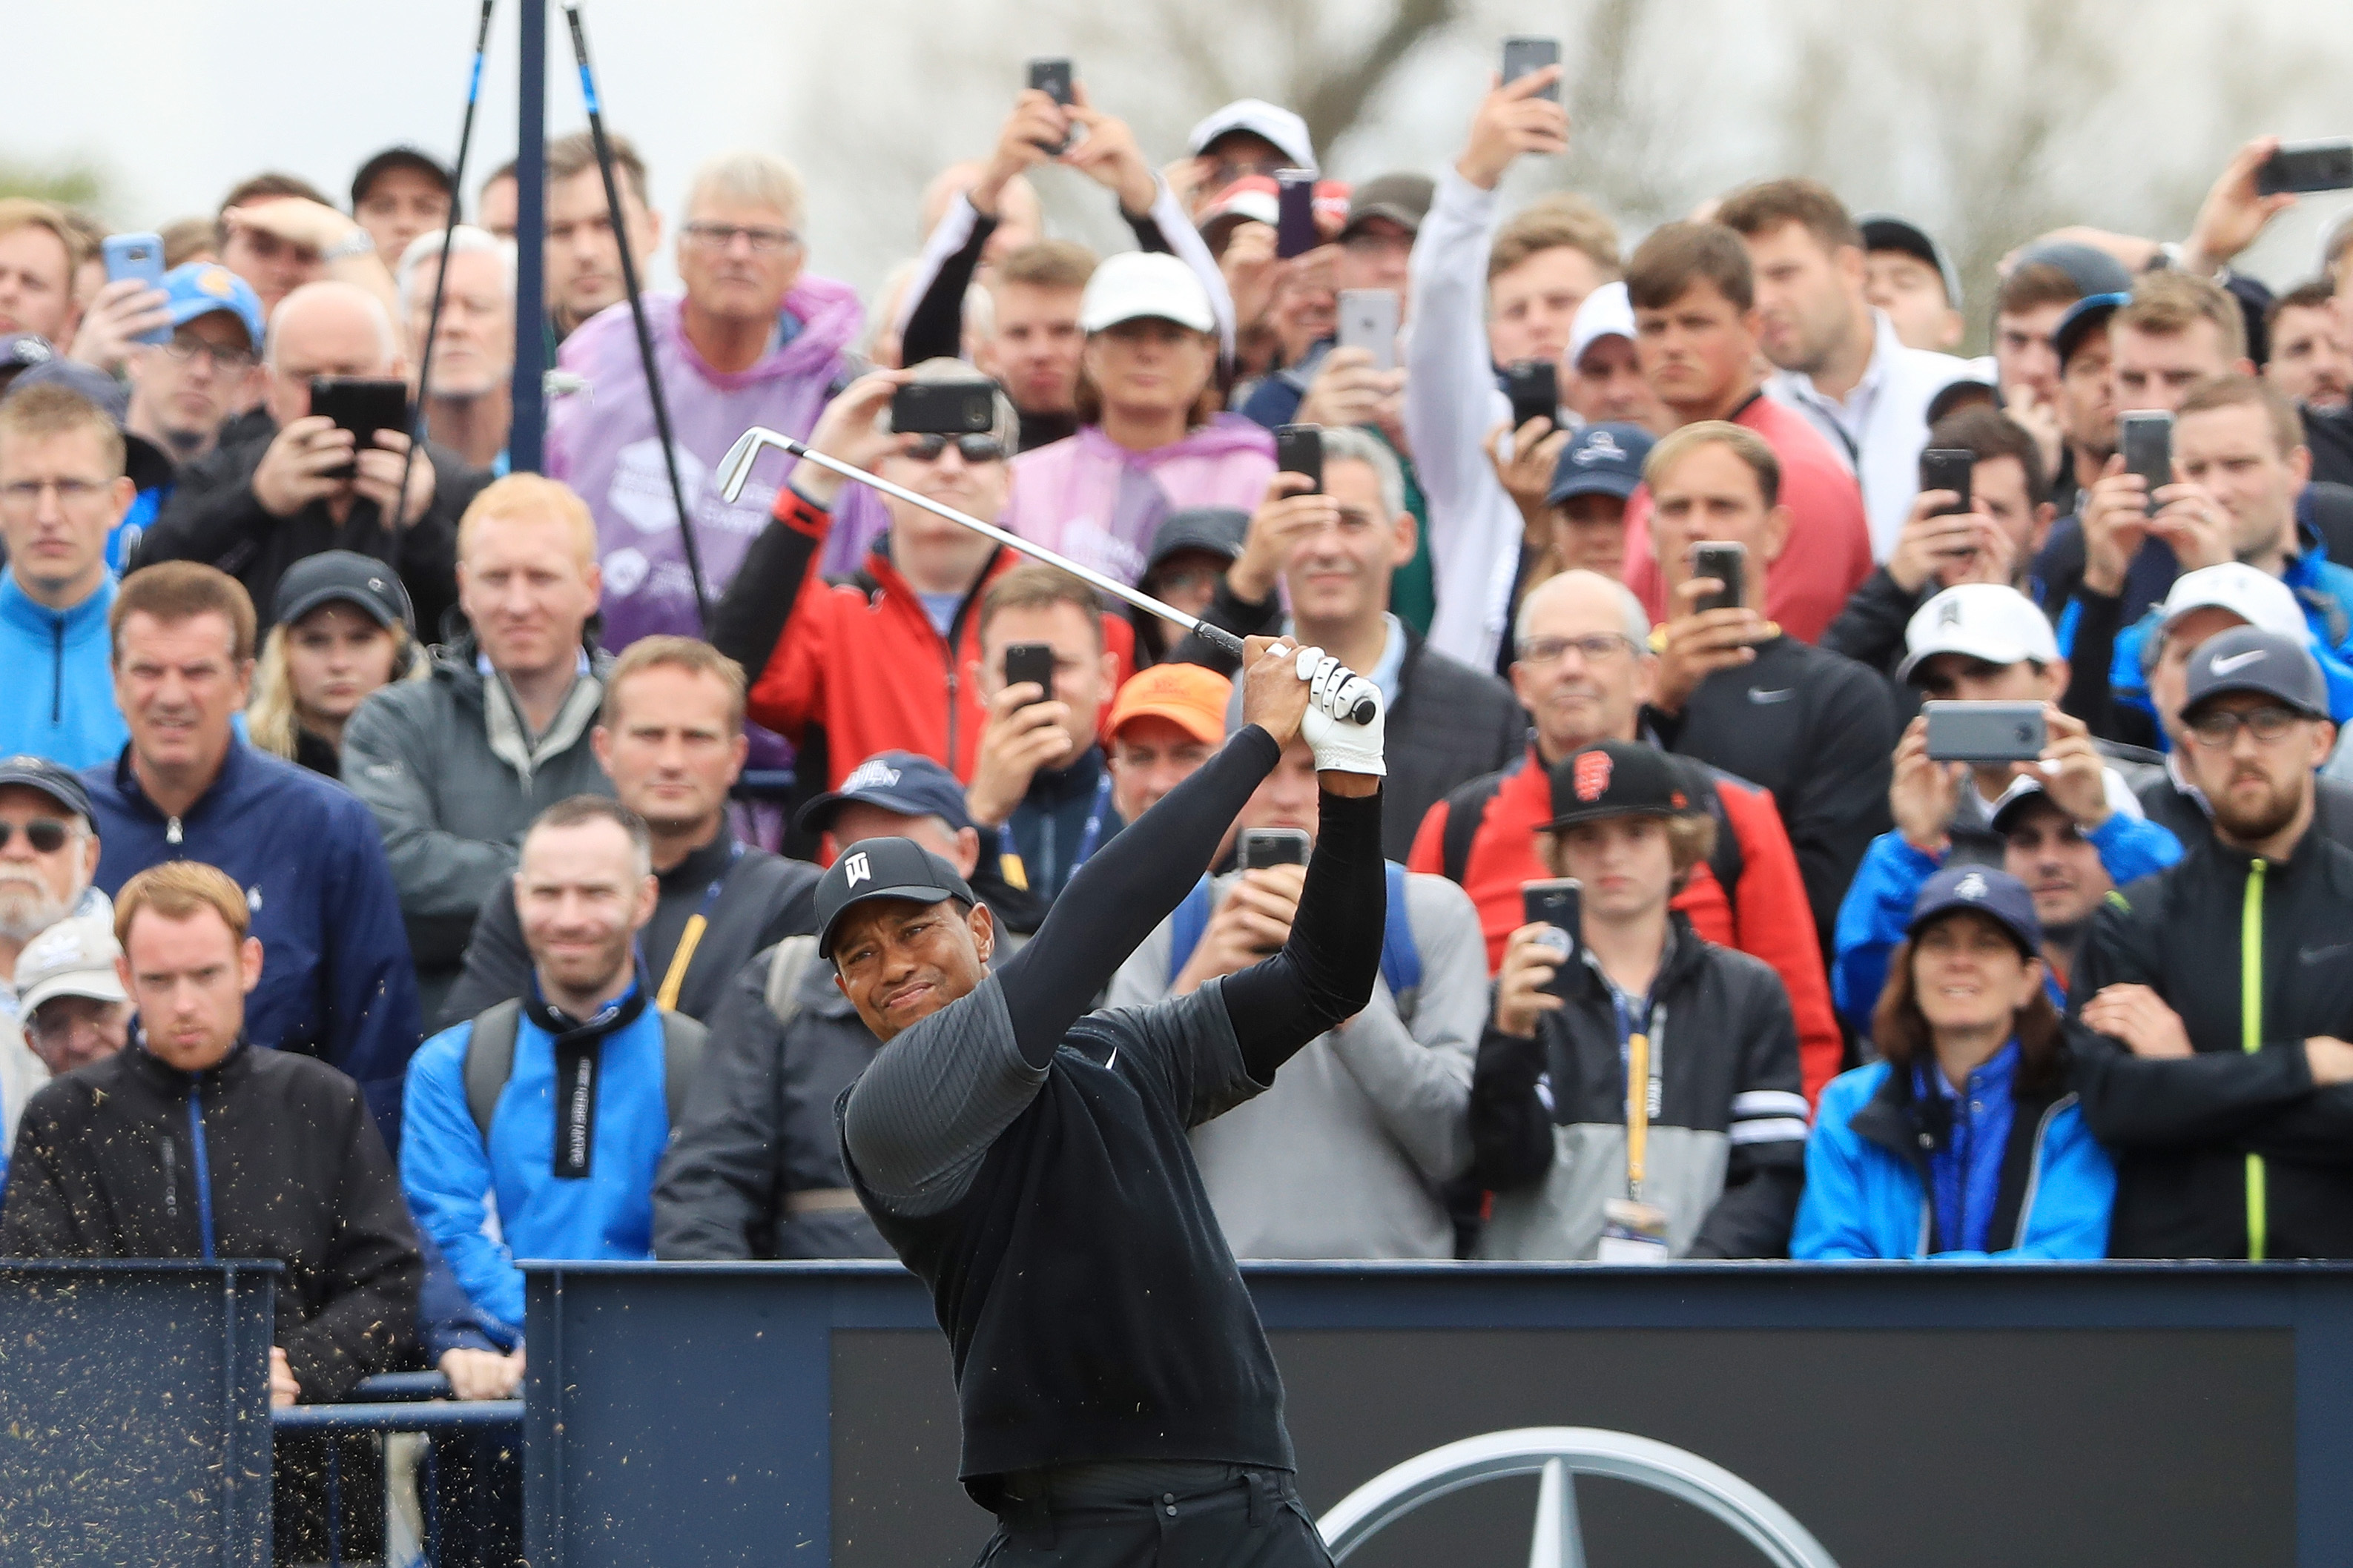 The galleries have stayed with Tiger Woods through two days of frustration.